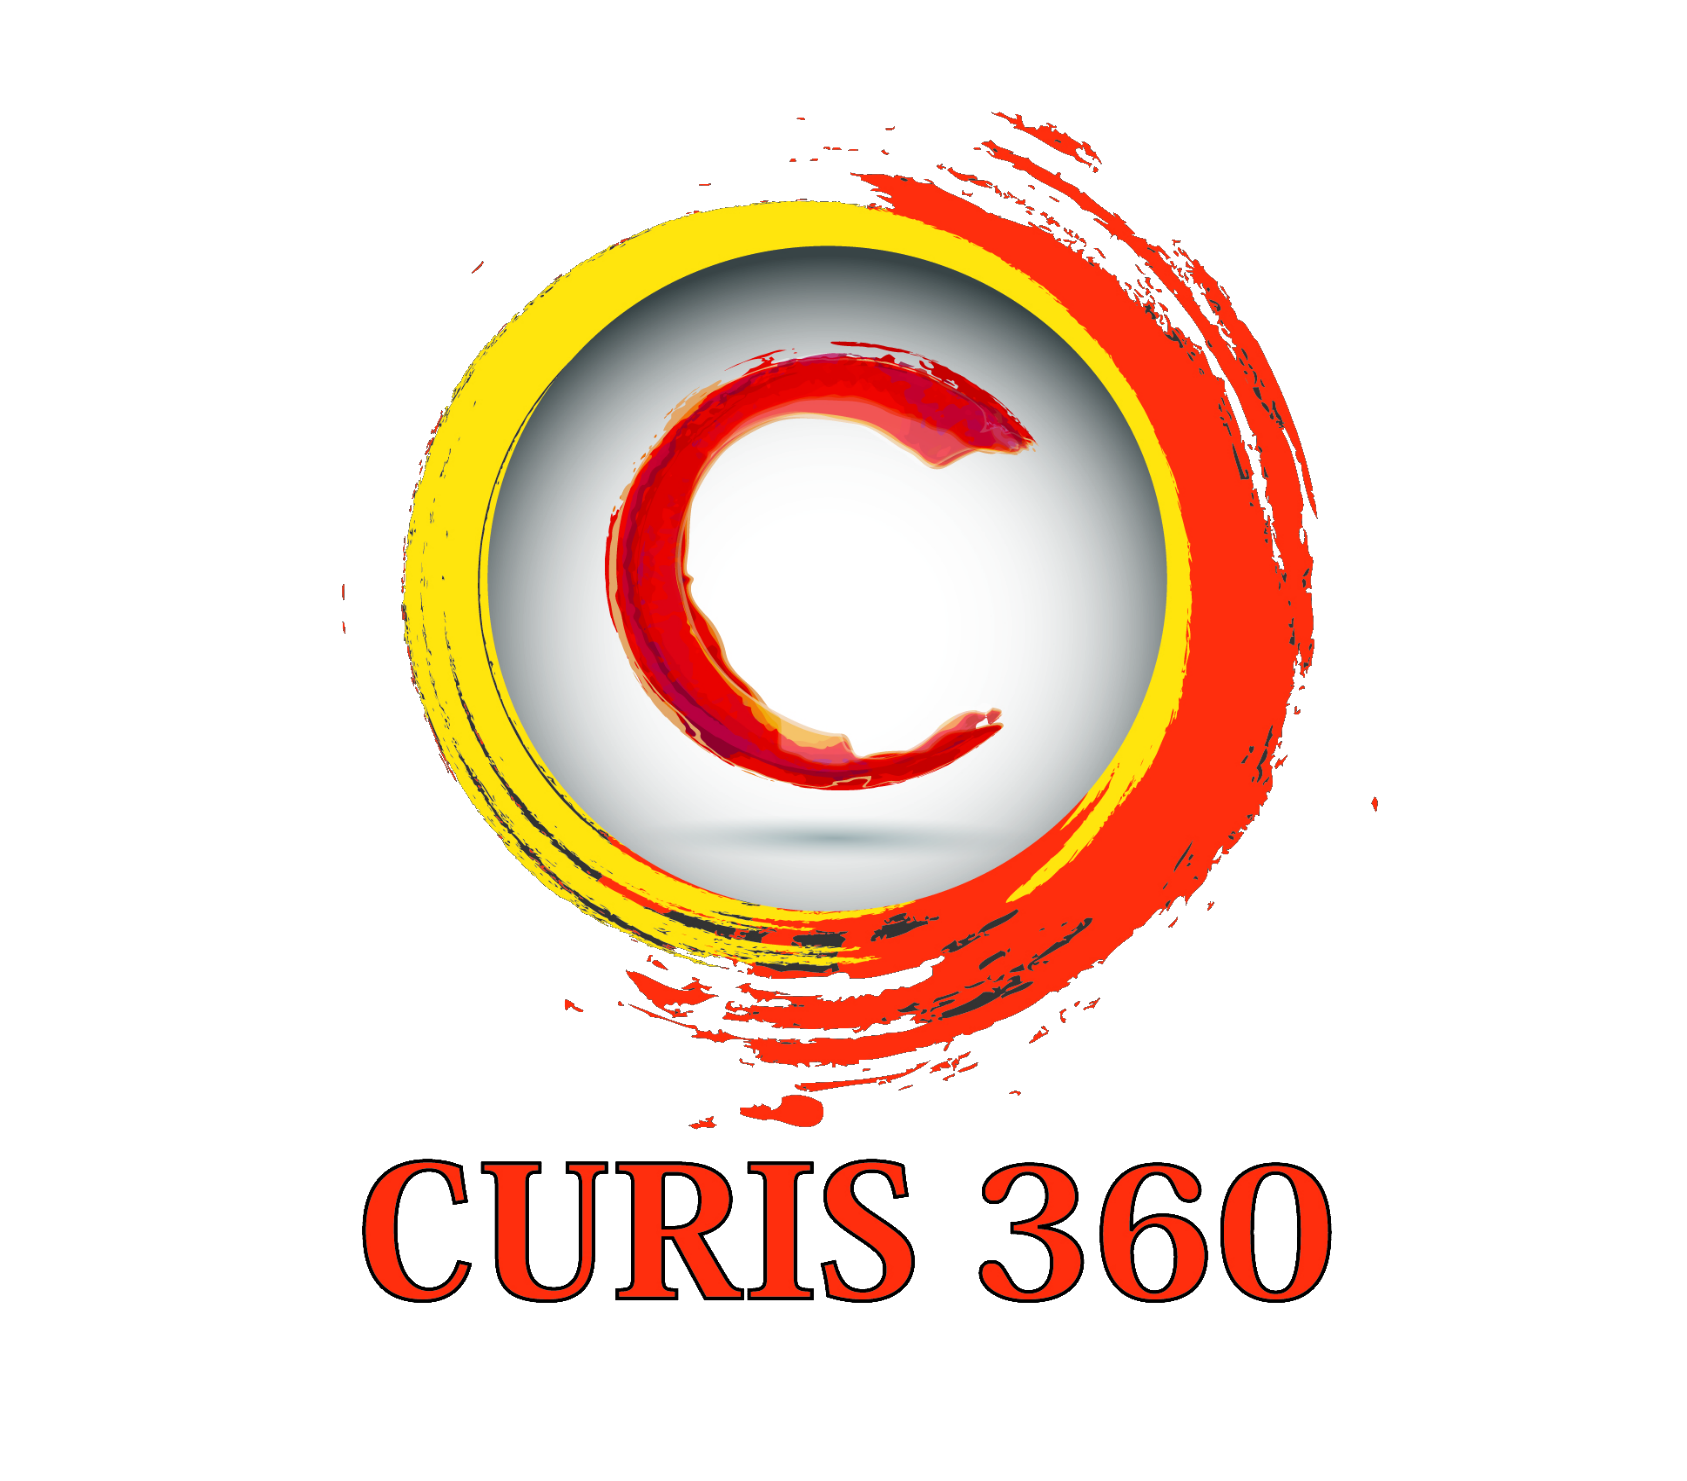 Curis 360 Physiotherapy And Fitness Clinic In Banashankari